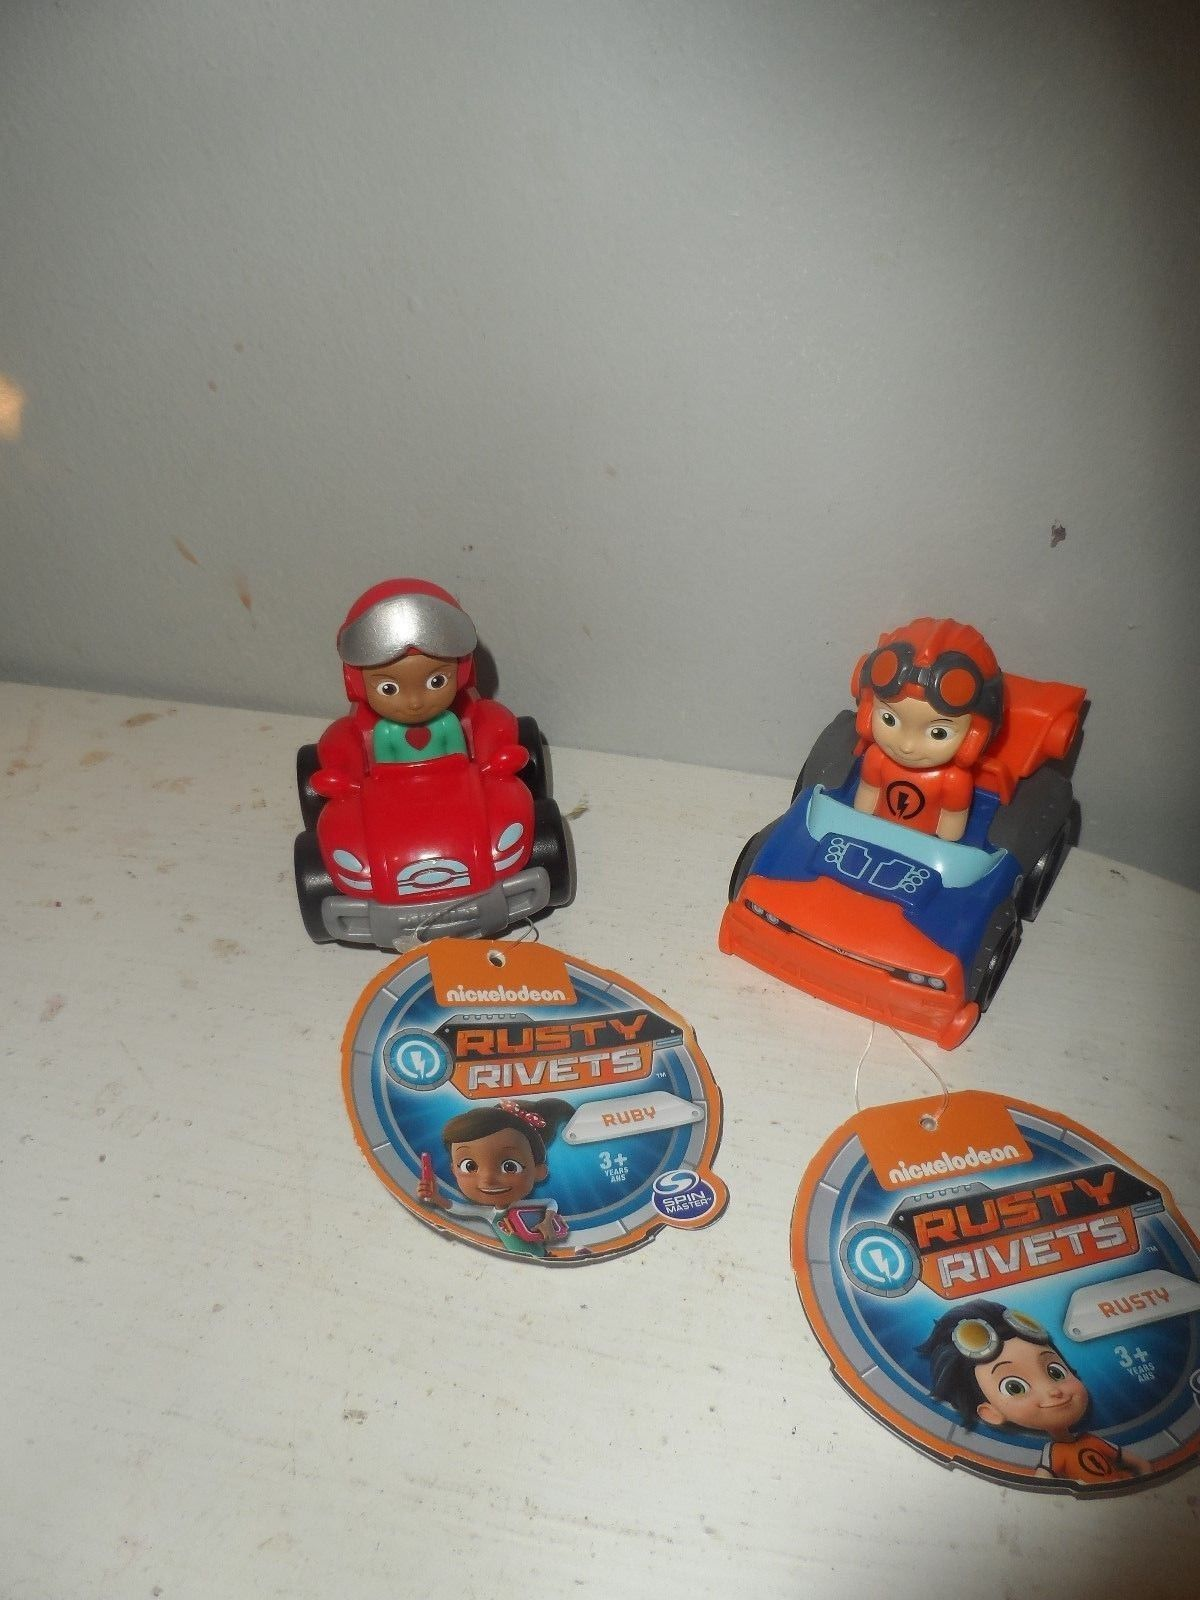 Primary image for Rusty Rivets - Ruby Racer And Rusty in Vehicle